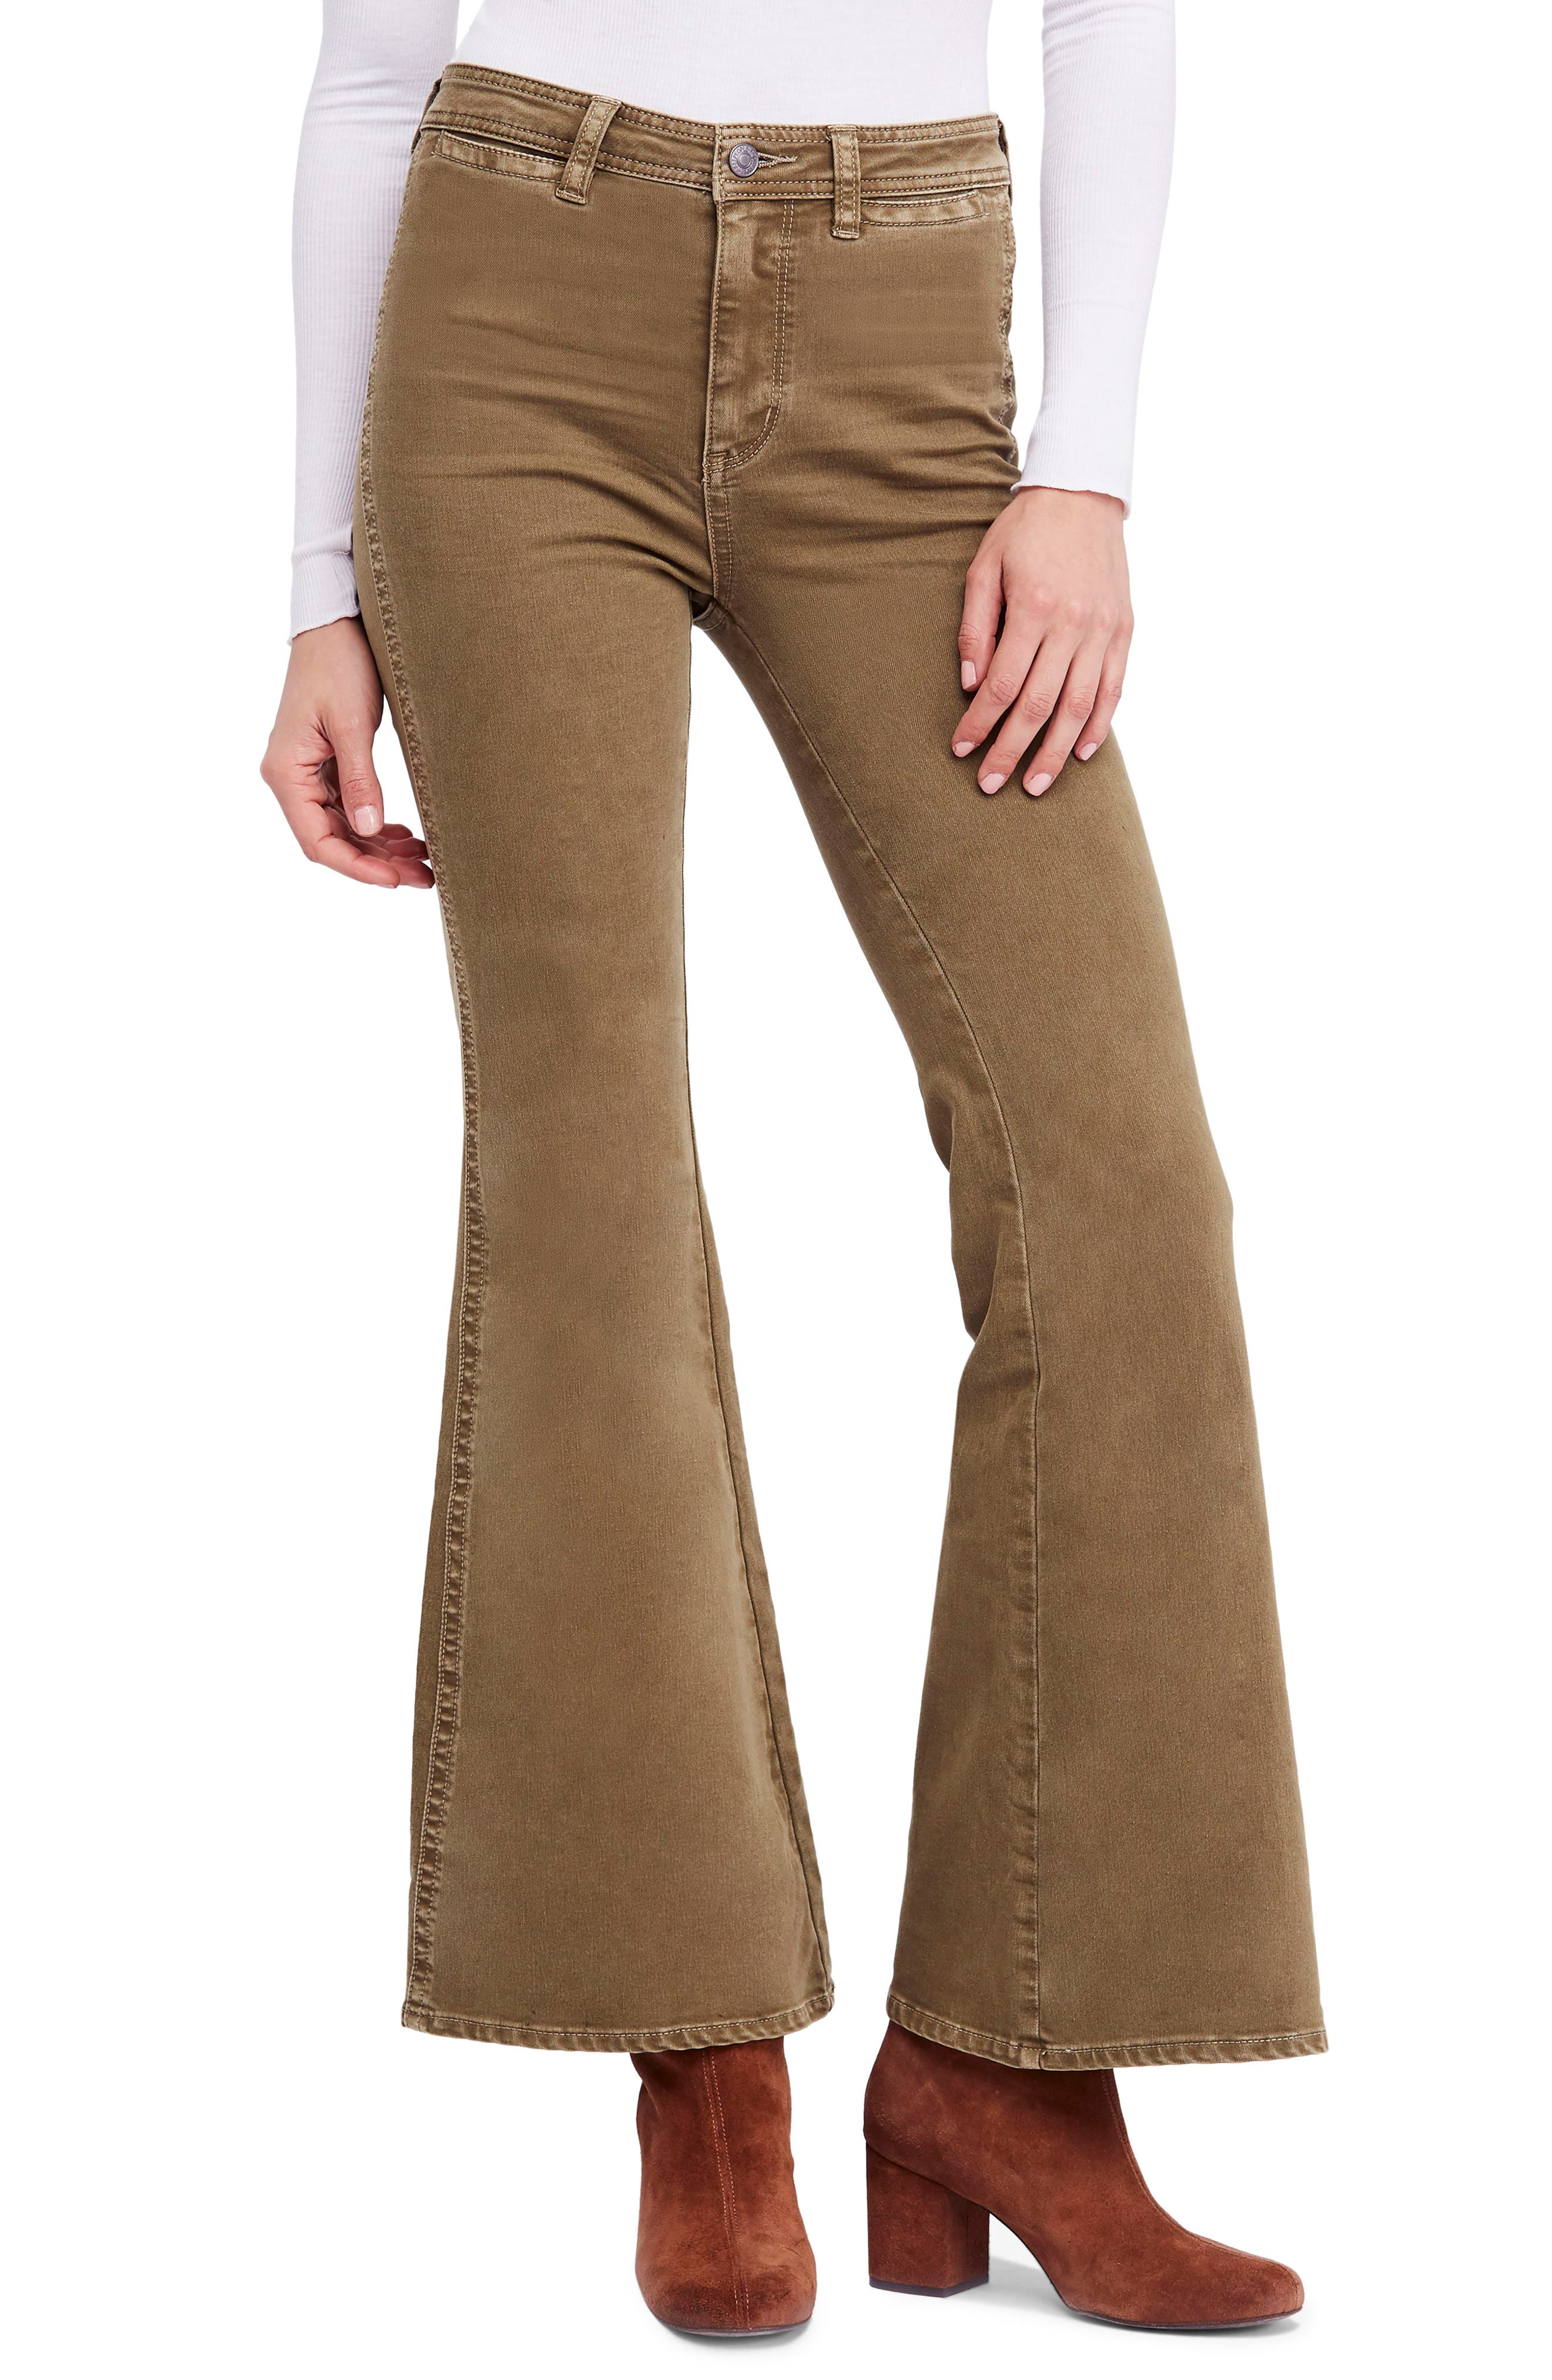 FREE PEOPLE,                             Brooke Flare Jeans,                             Main thumbnail 1, color,                             200